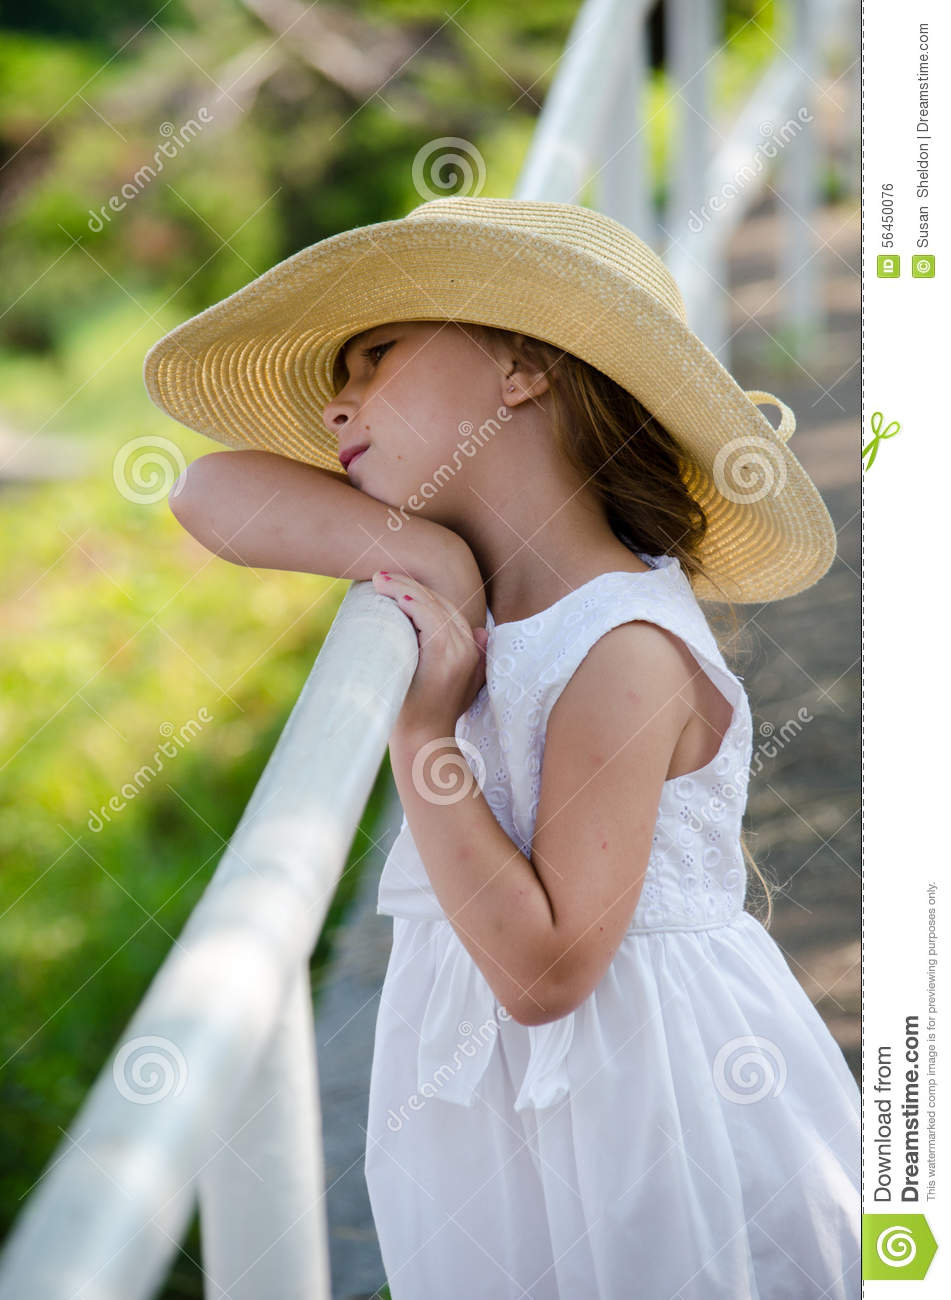 Peaceful Little Girl In A Straw Hat Stock Photo - Image of dreaming ... 73746bb7bf0